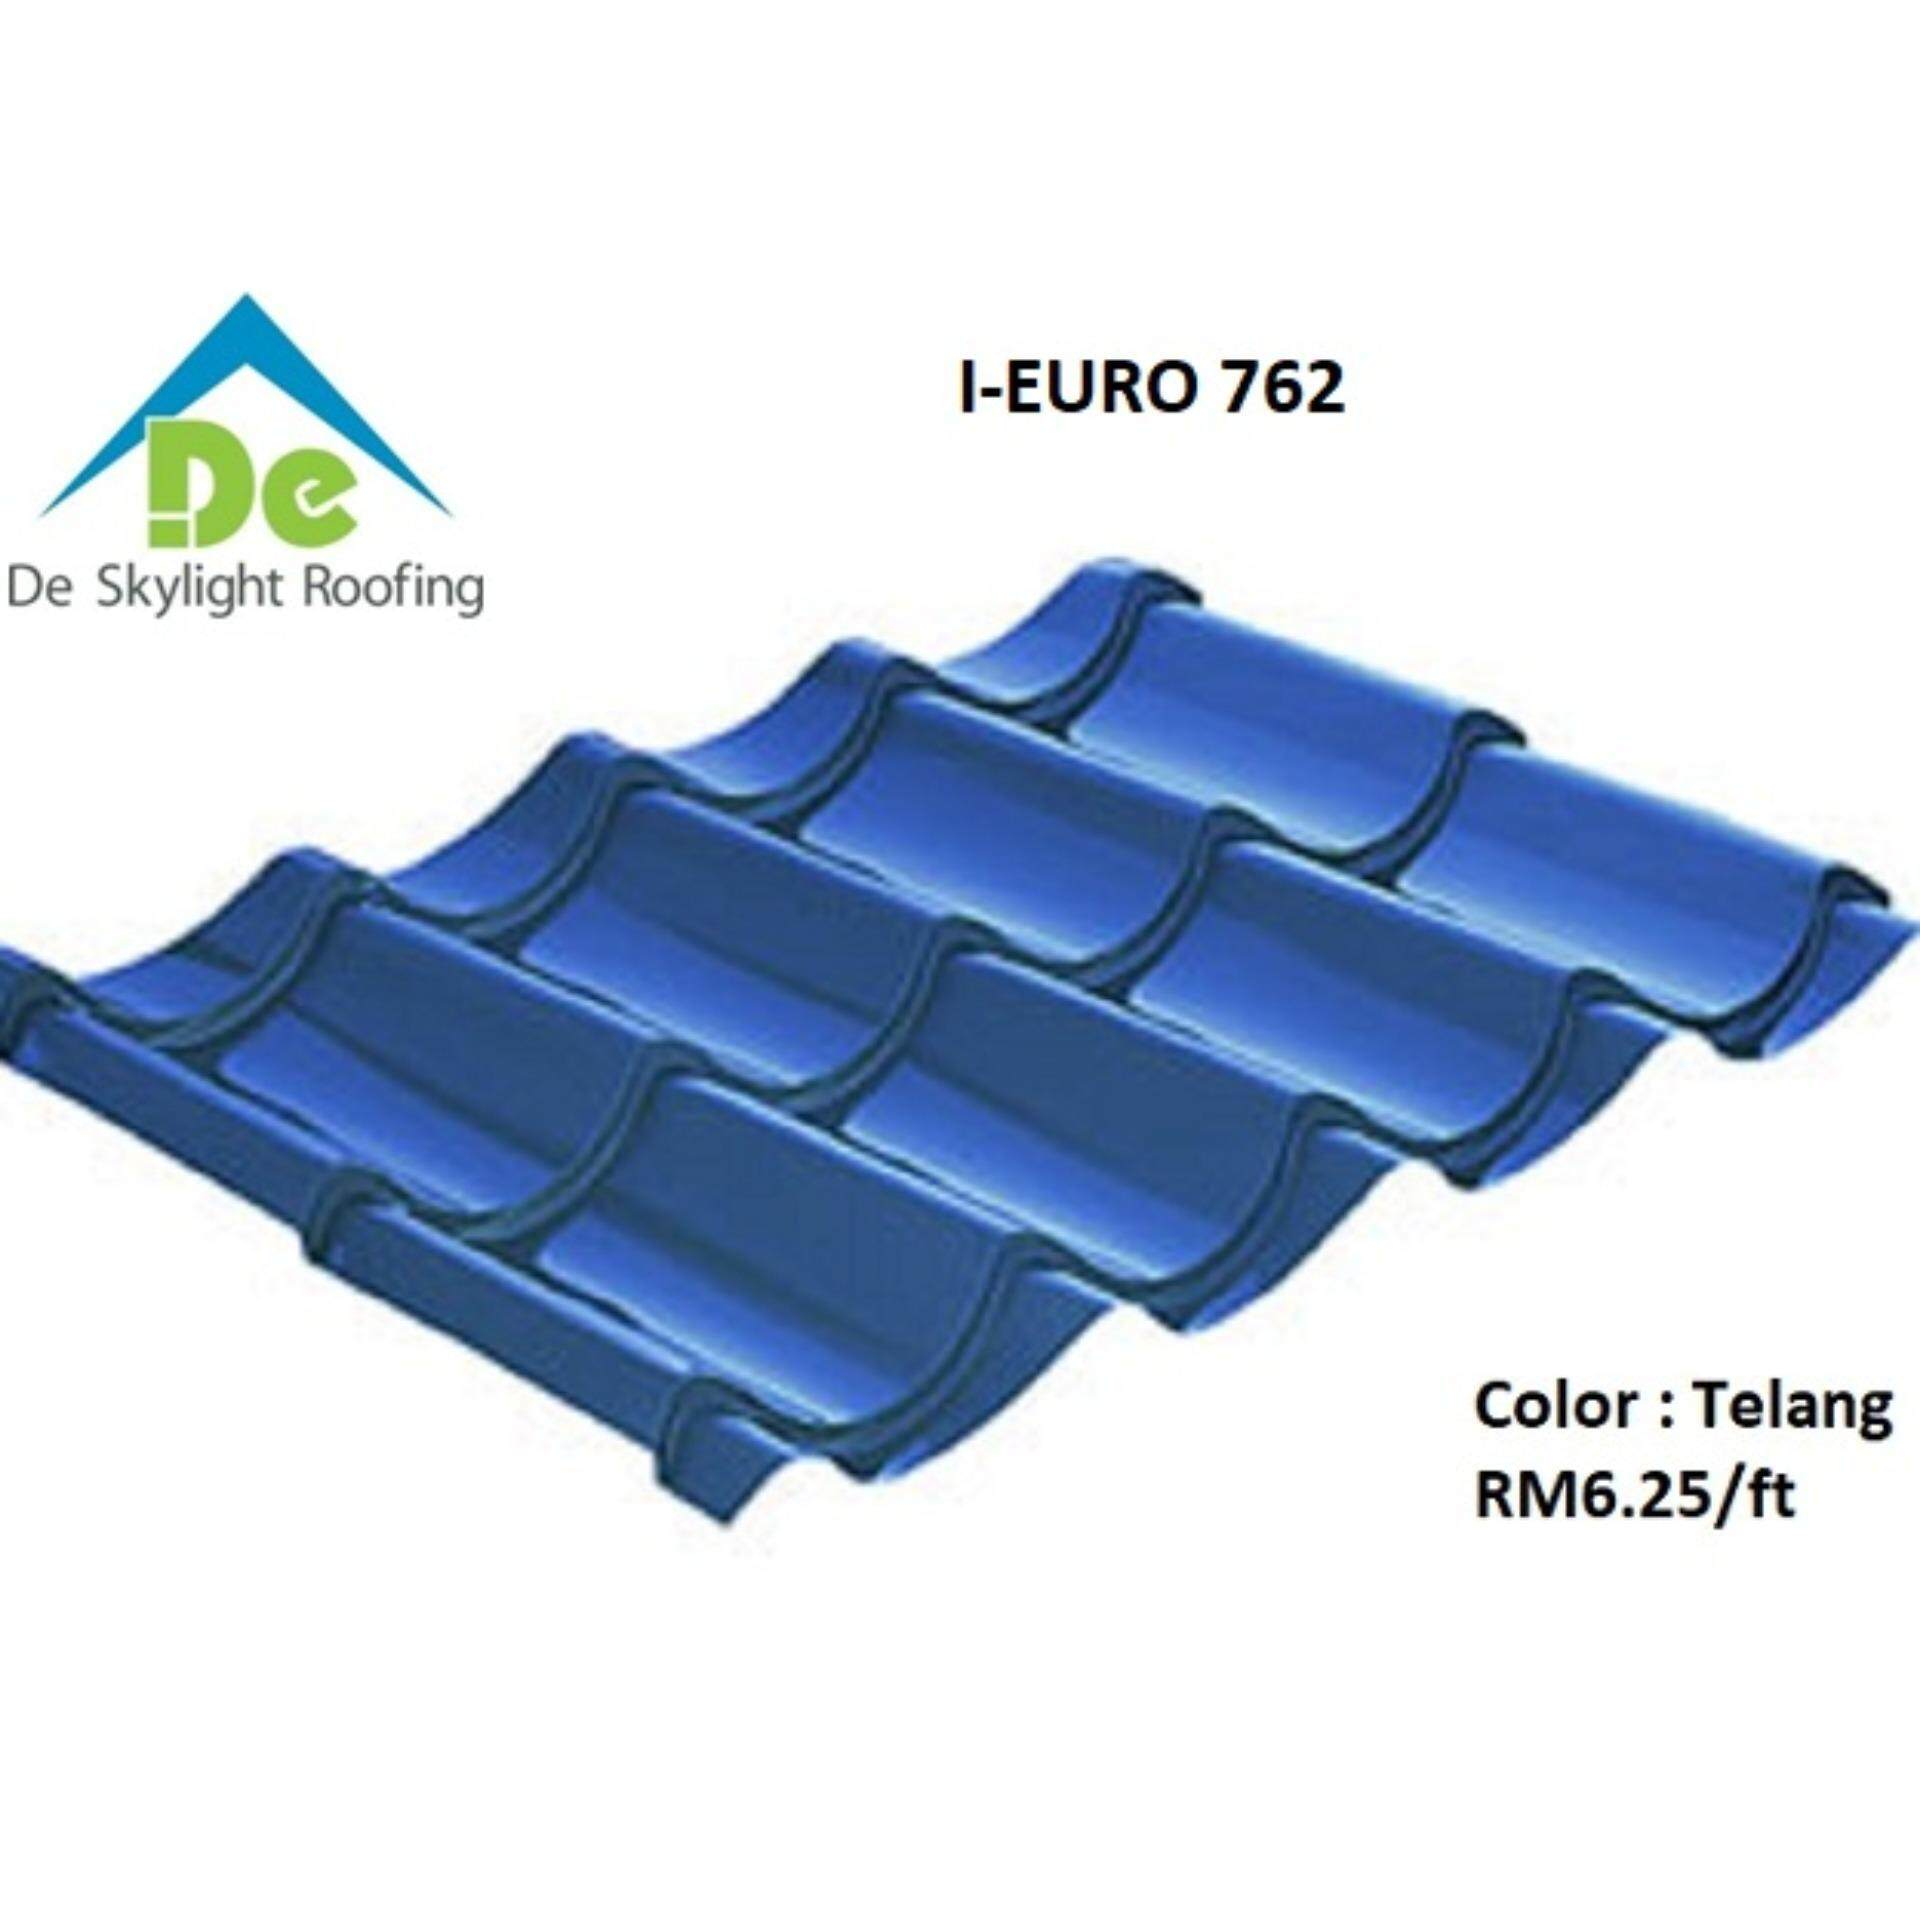 Metal Deck I-Euro 762 Bluescope Zacs Roofing Thickness 0.47mm TCT